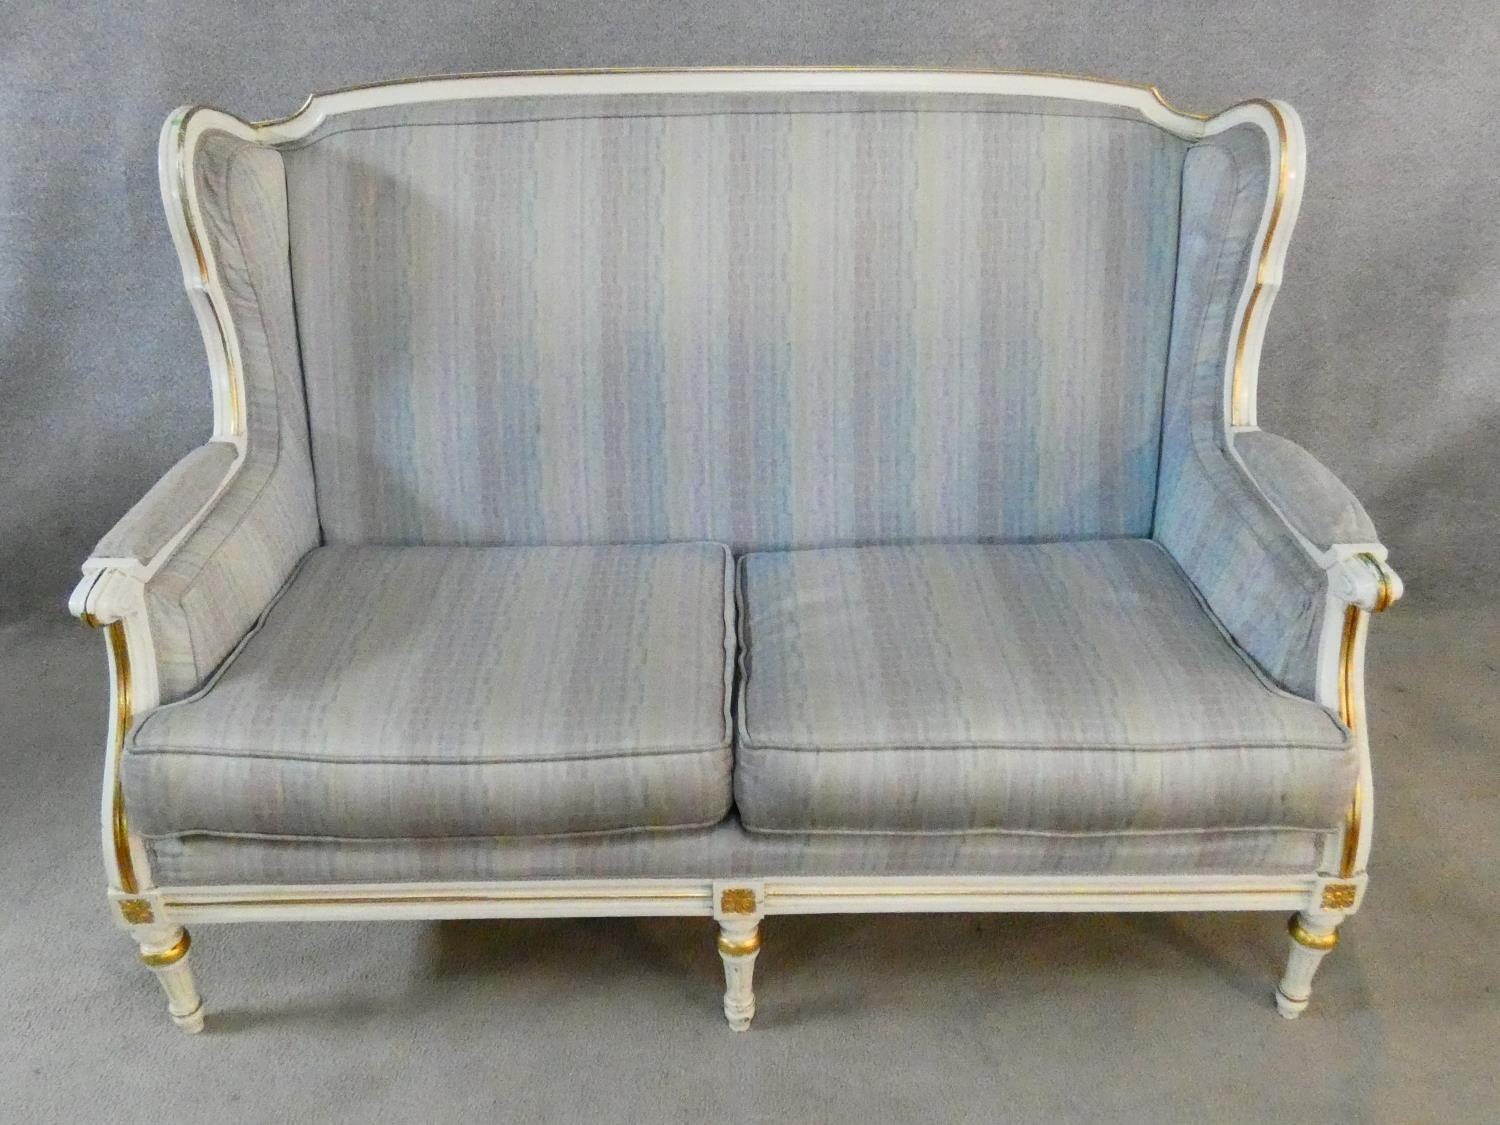 A Louis XVI style gilt and with painted two seater sofa in pale damask upholstery. H.93 L.136 D.77cm - Image 2 of 20